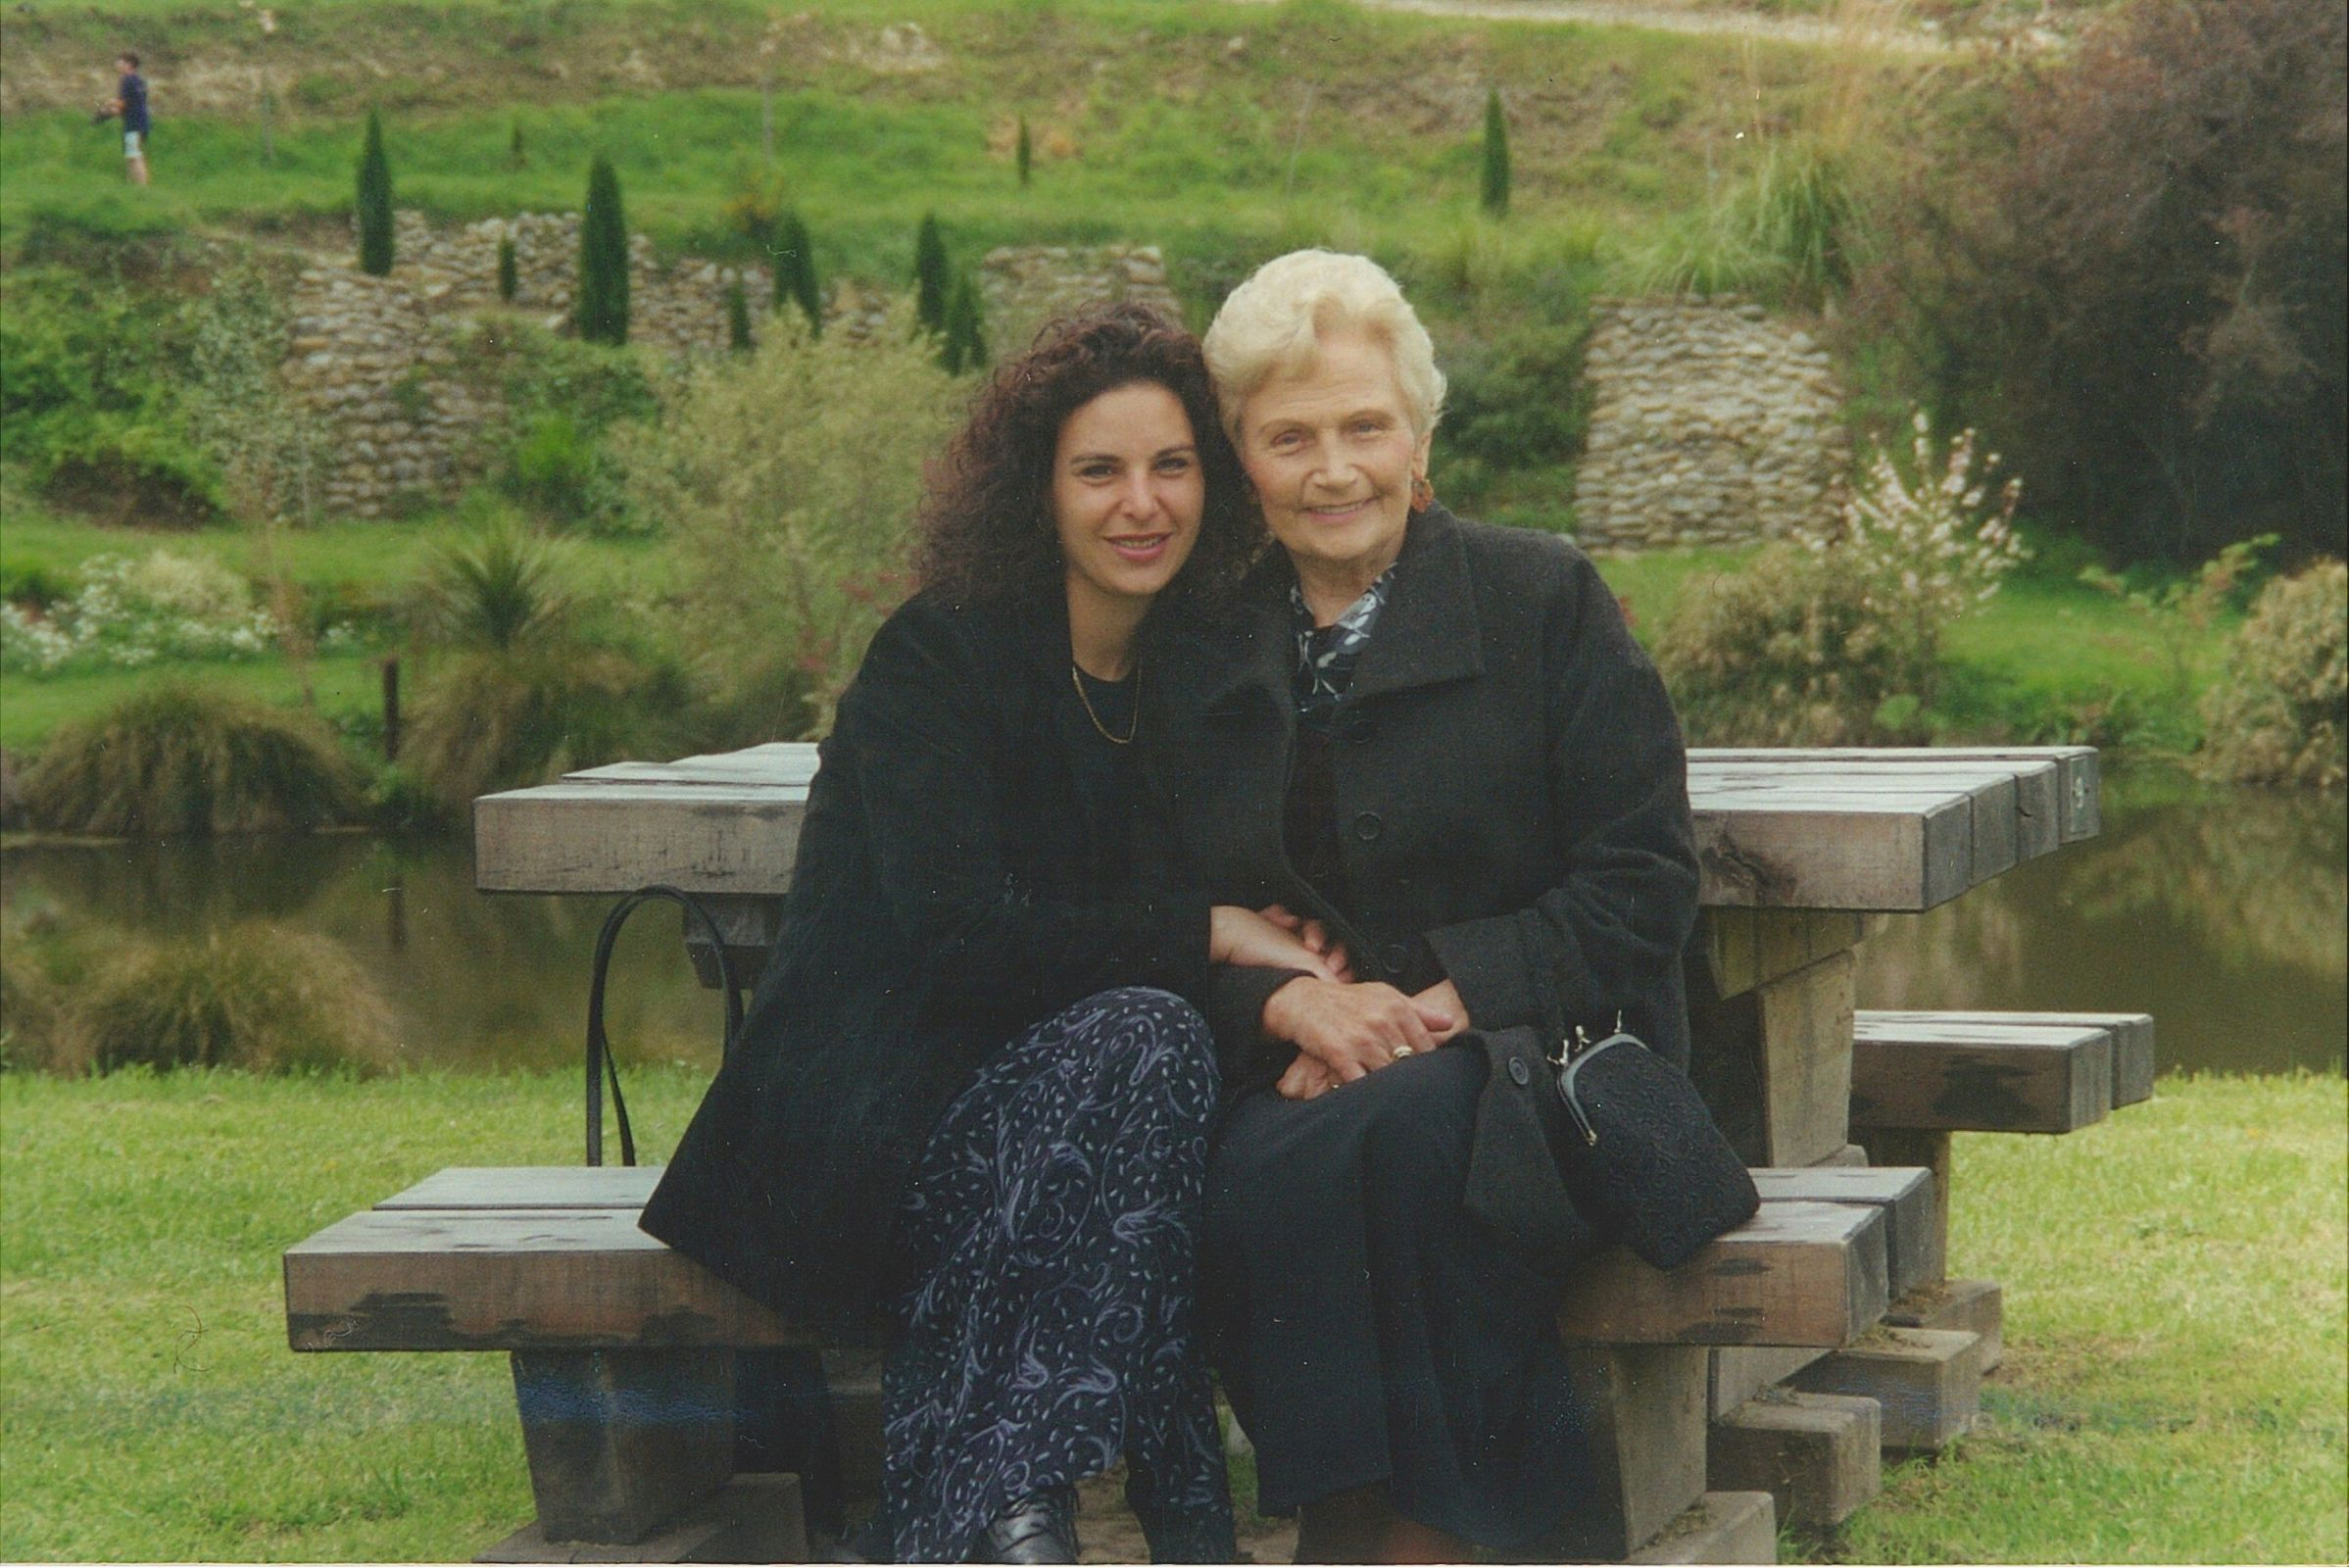 Irena Kuźmiuk sitting with her granddaughter at a picnic table in a Christchurch park.